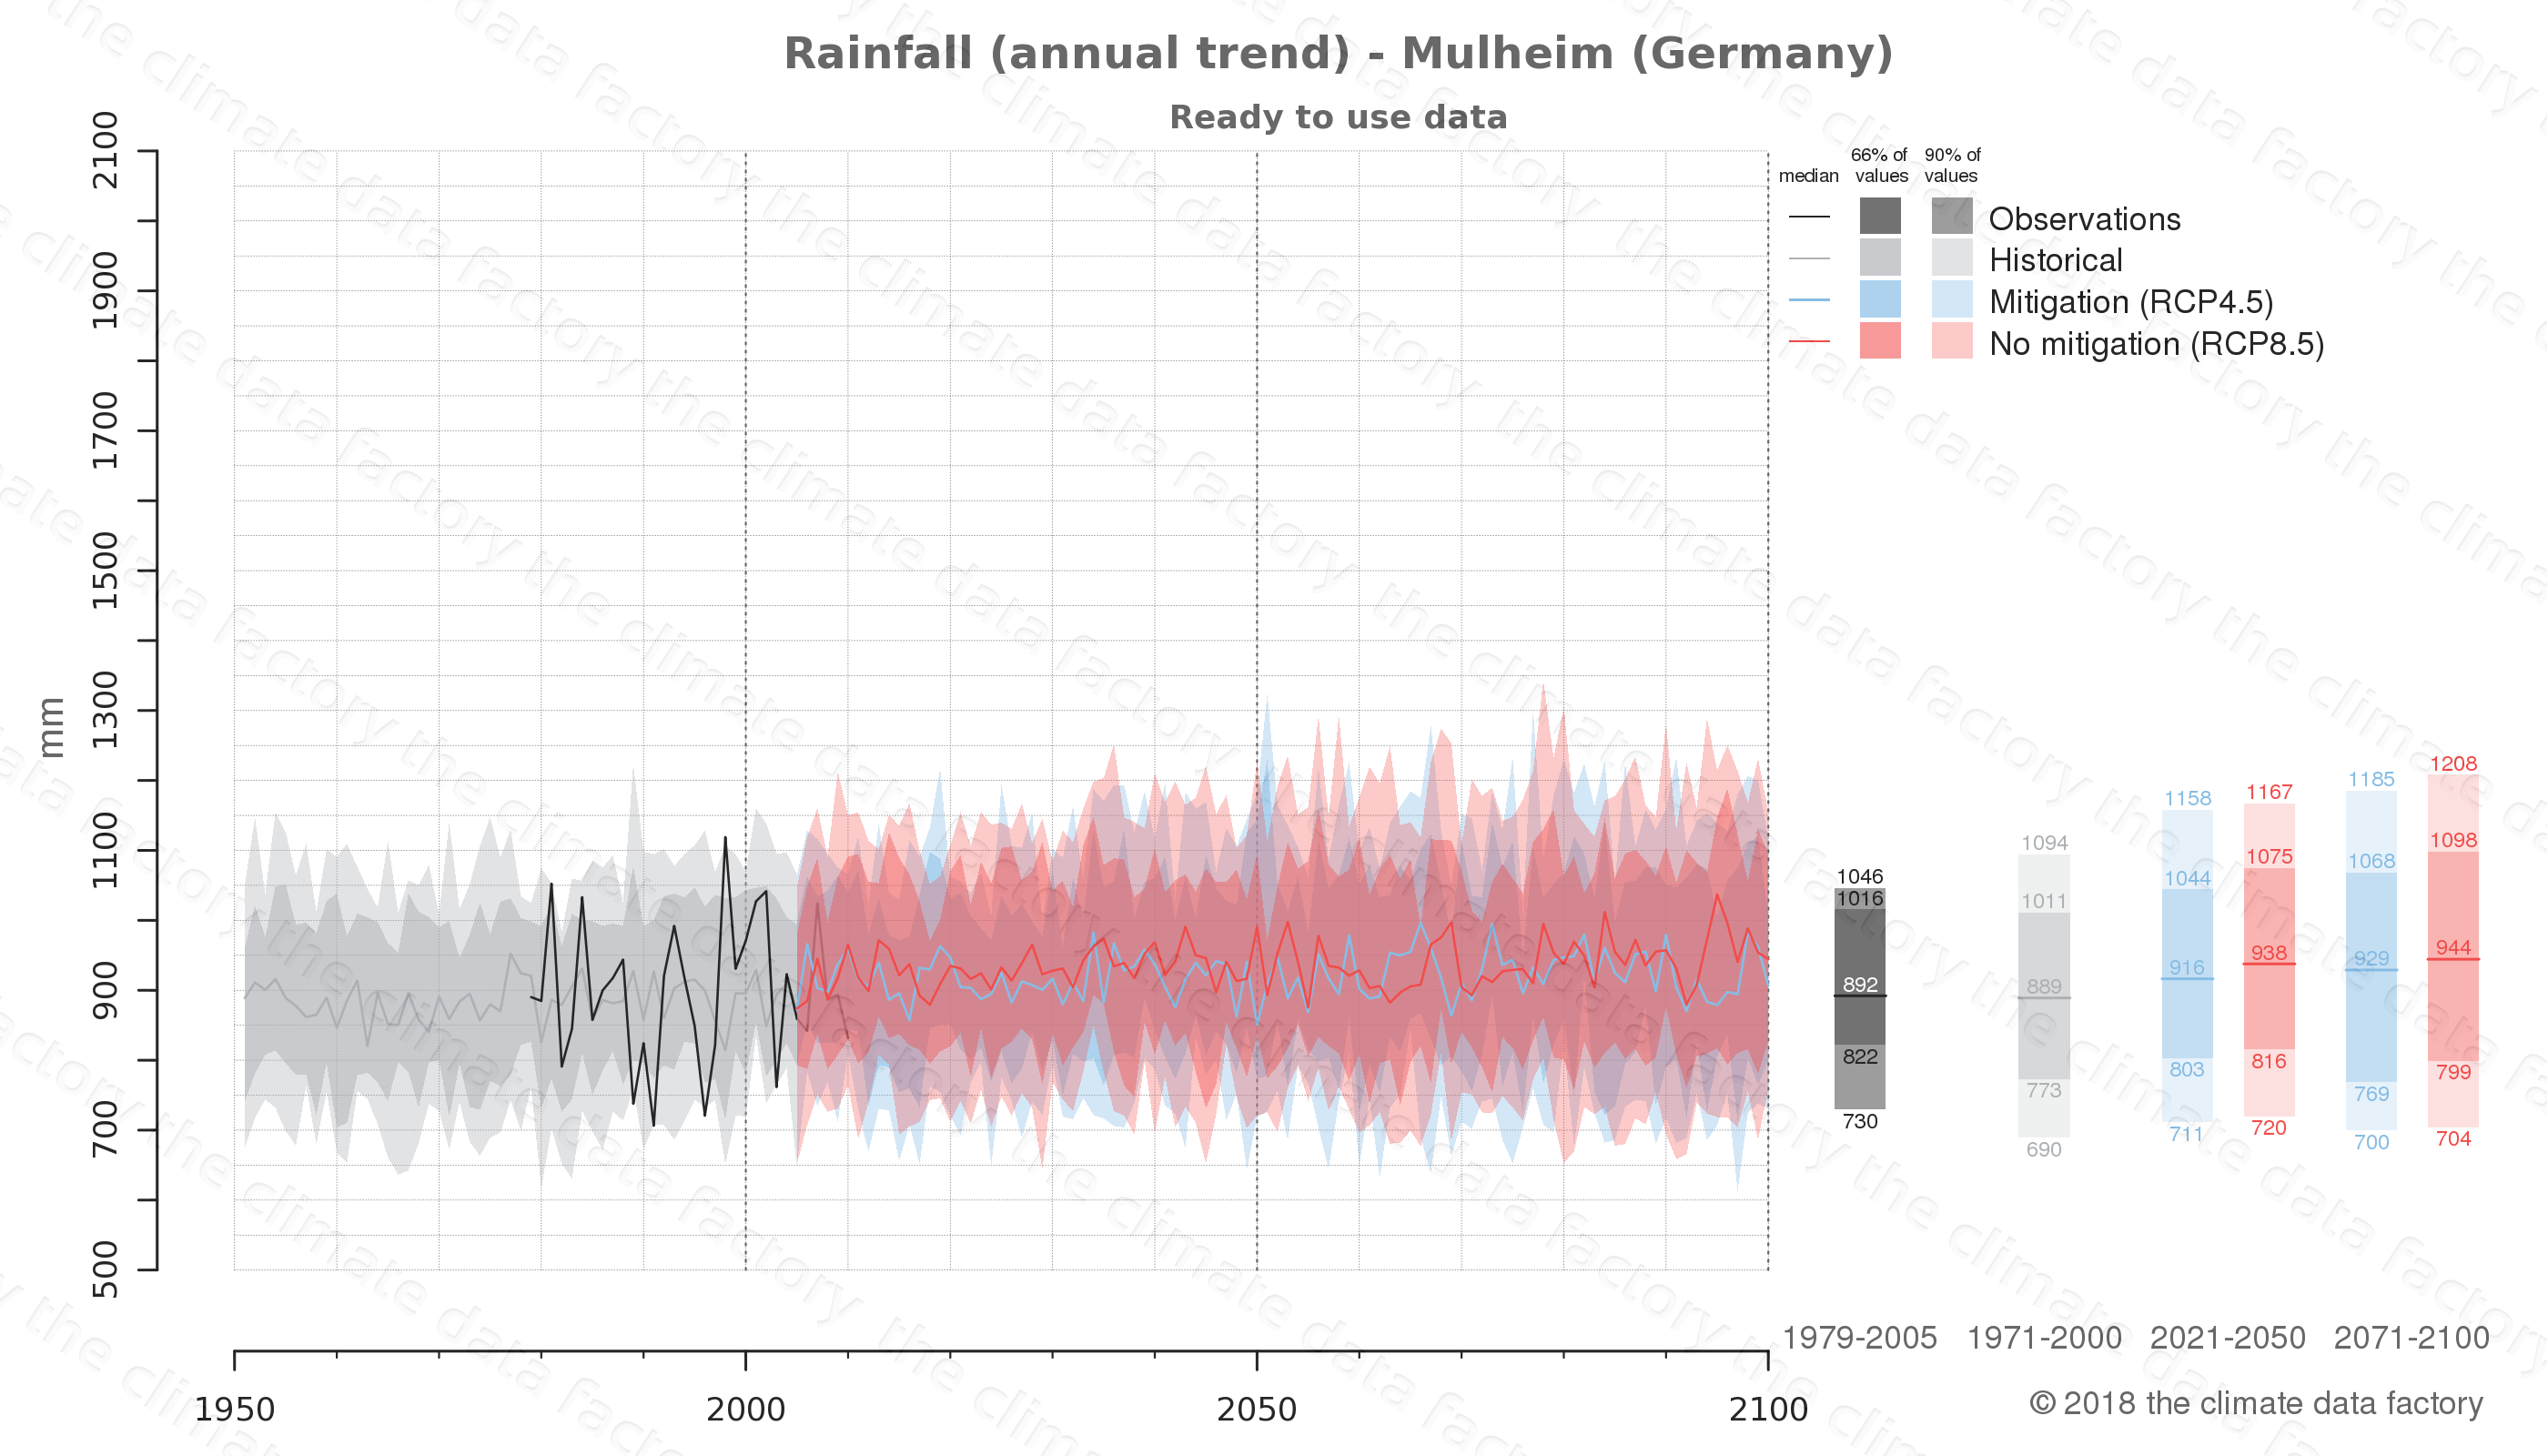 climate change data policy adaptation climate graph city data rainfall mulheim germany